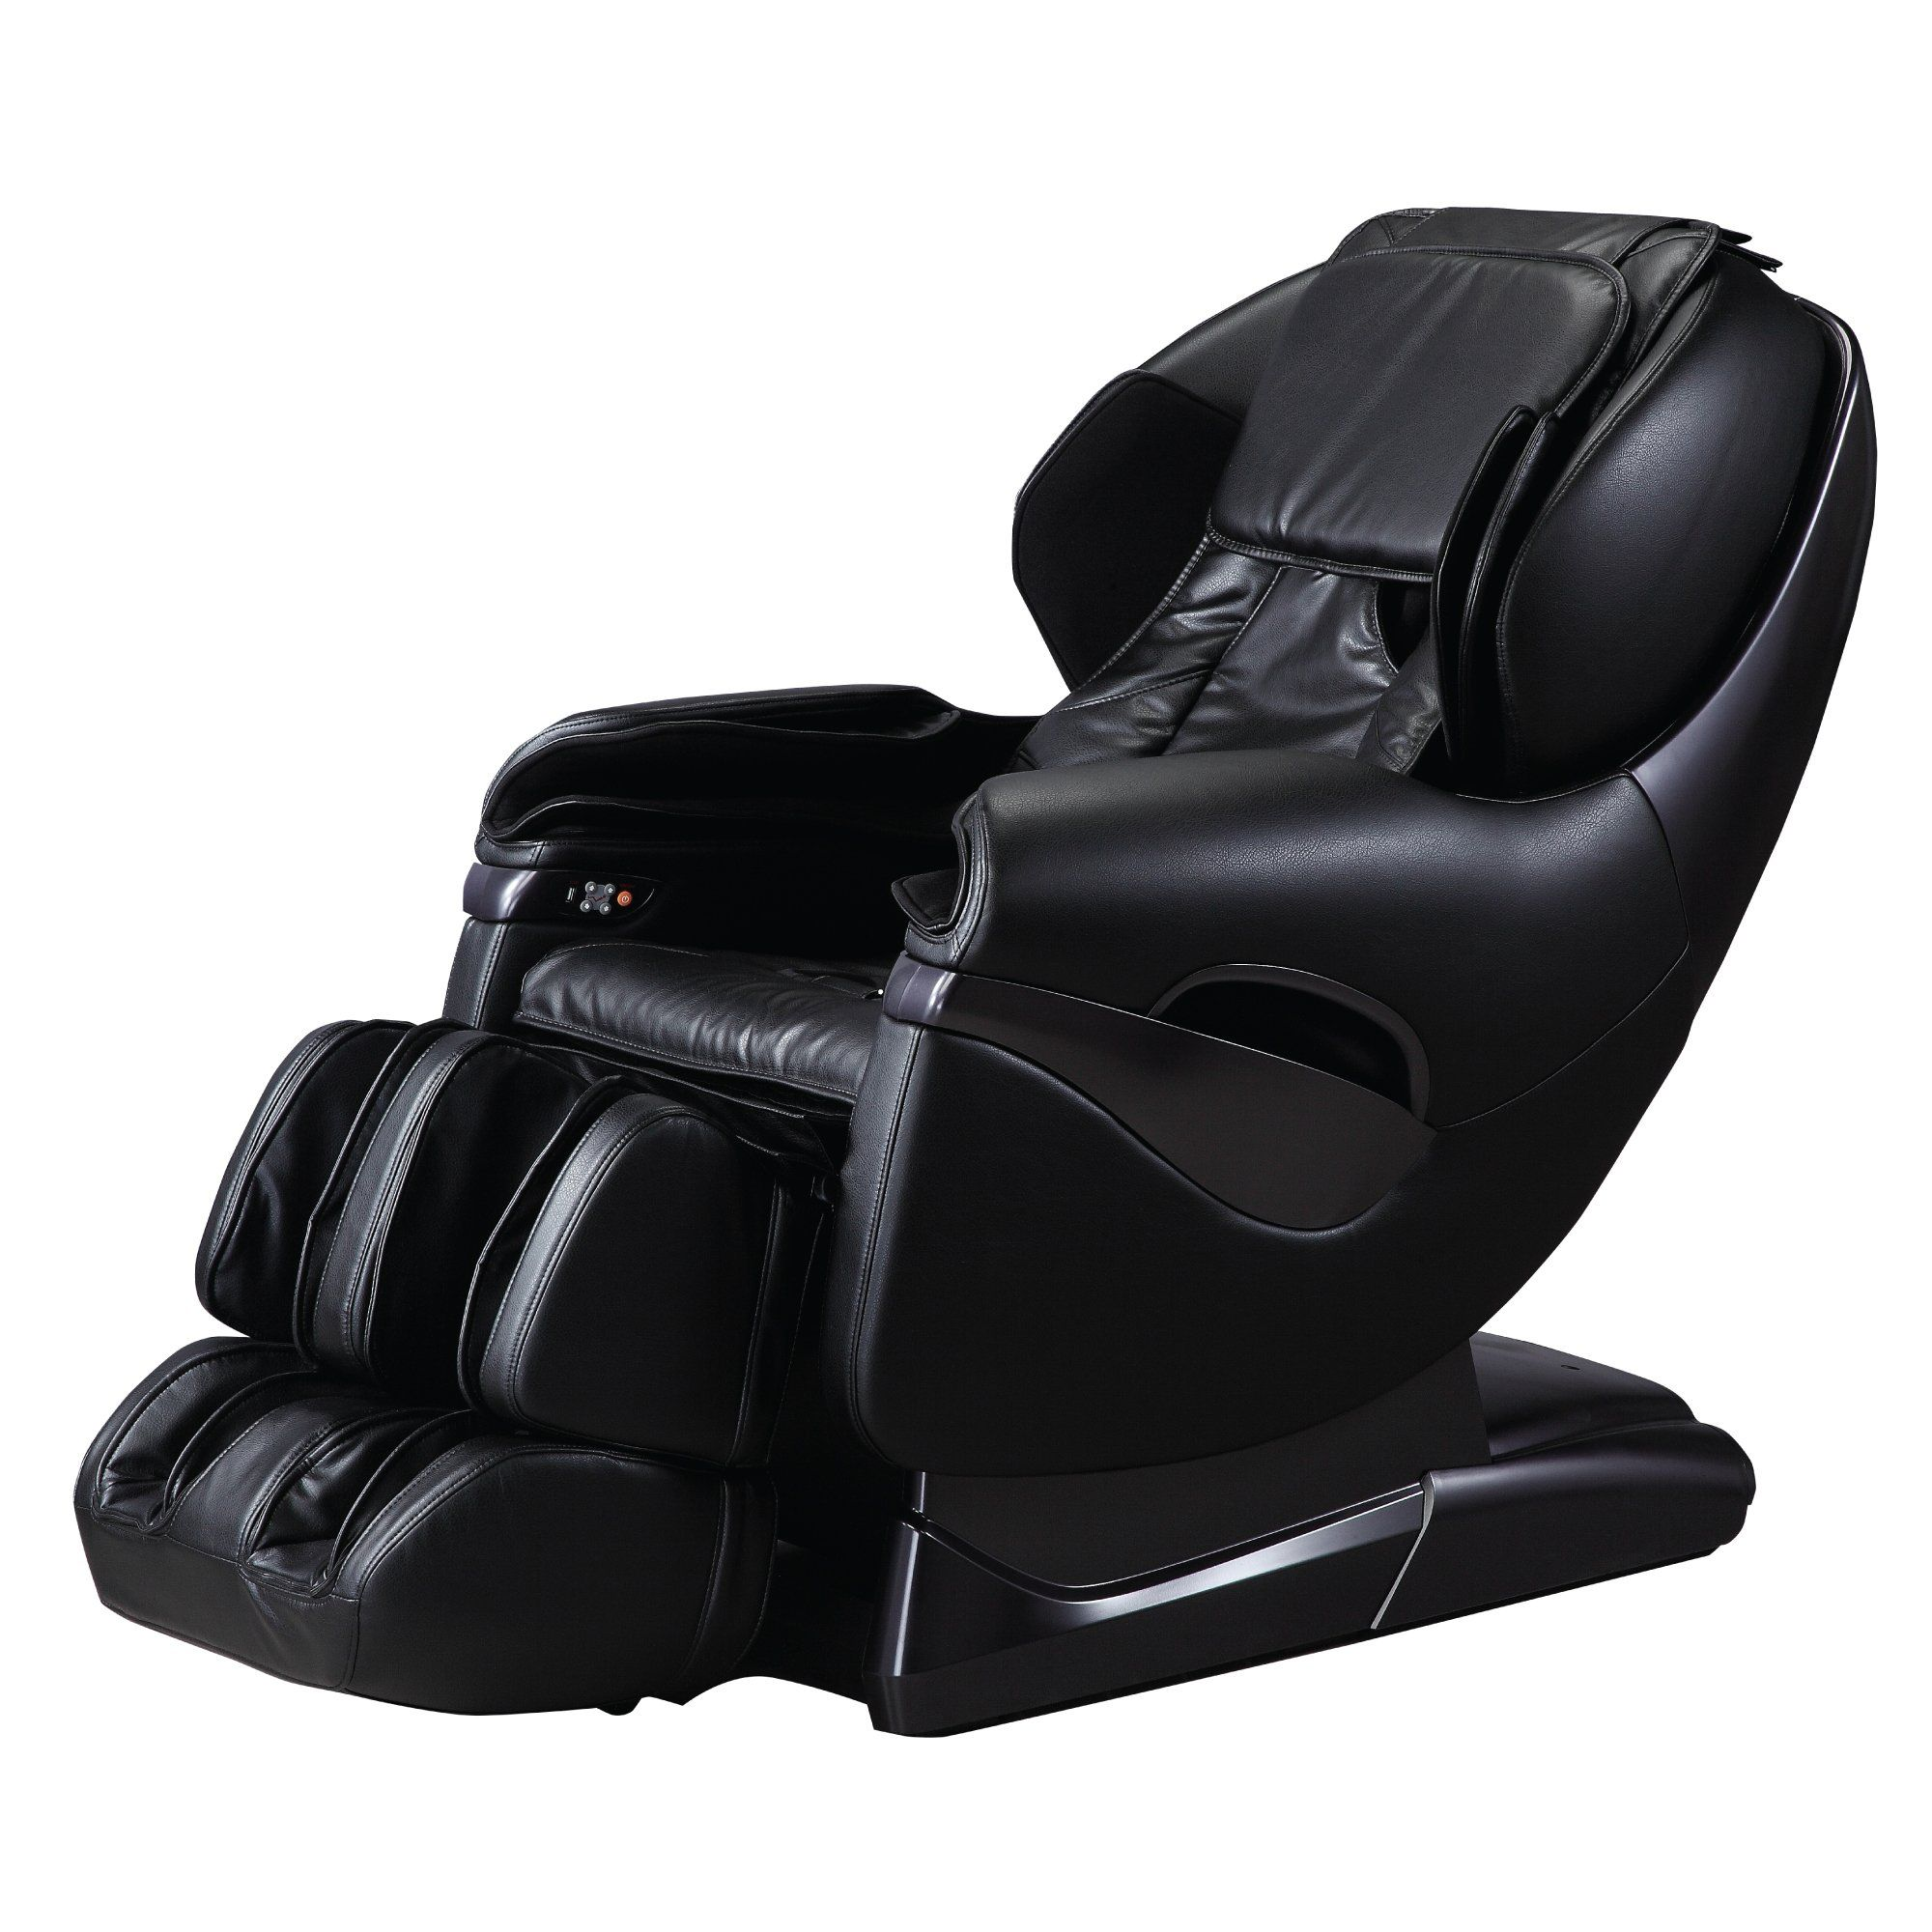 Titan OS8500 Zero Gravity Massage Chair Massage chair